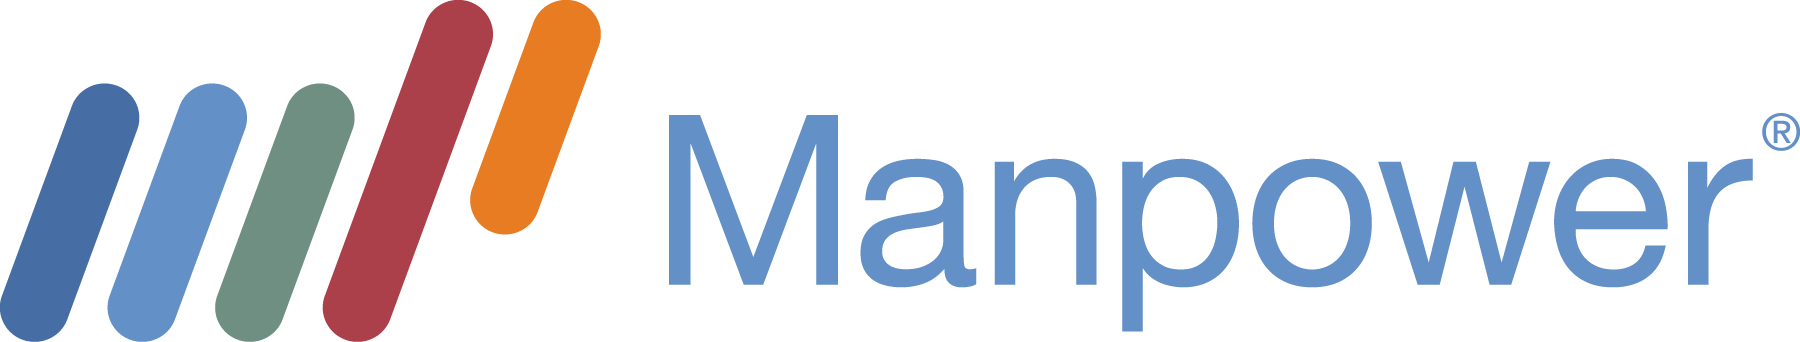 Learn more about Manpower